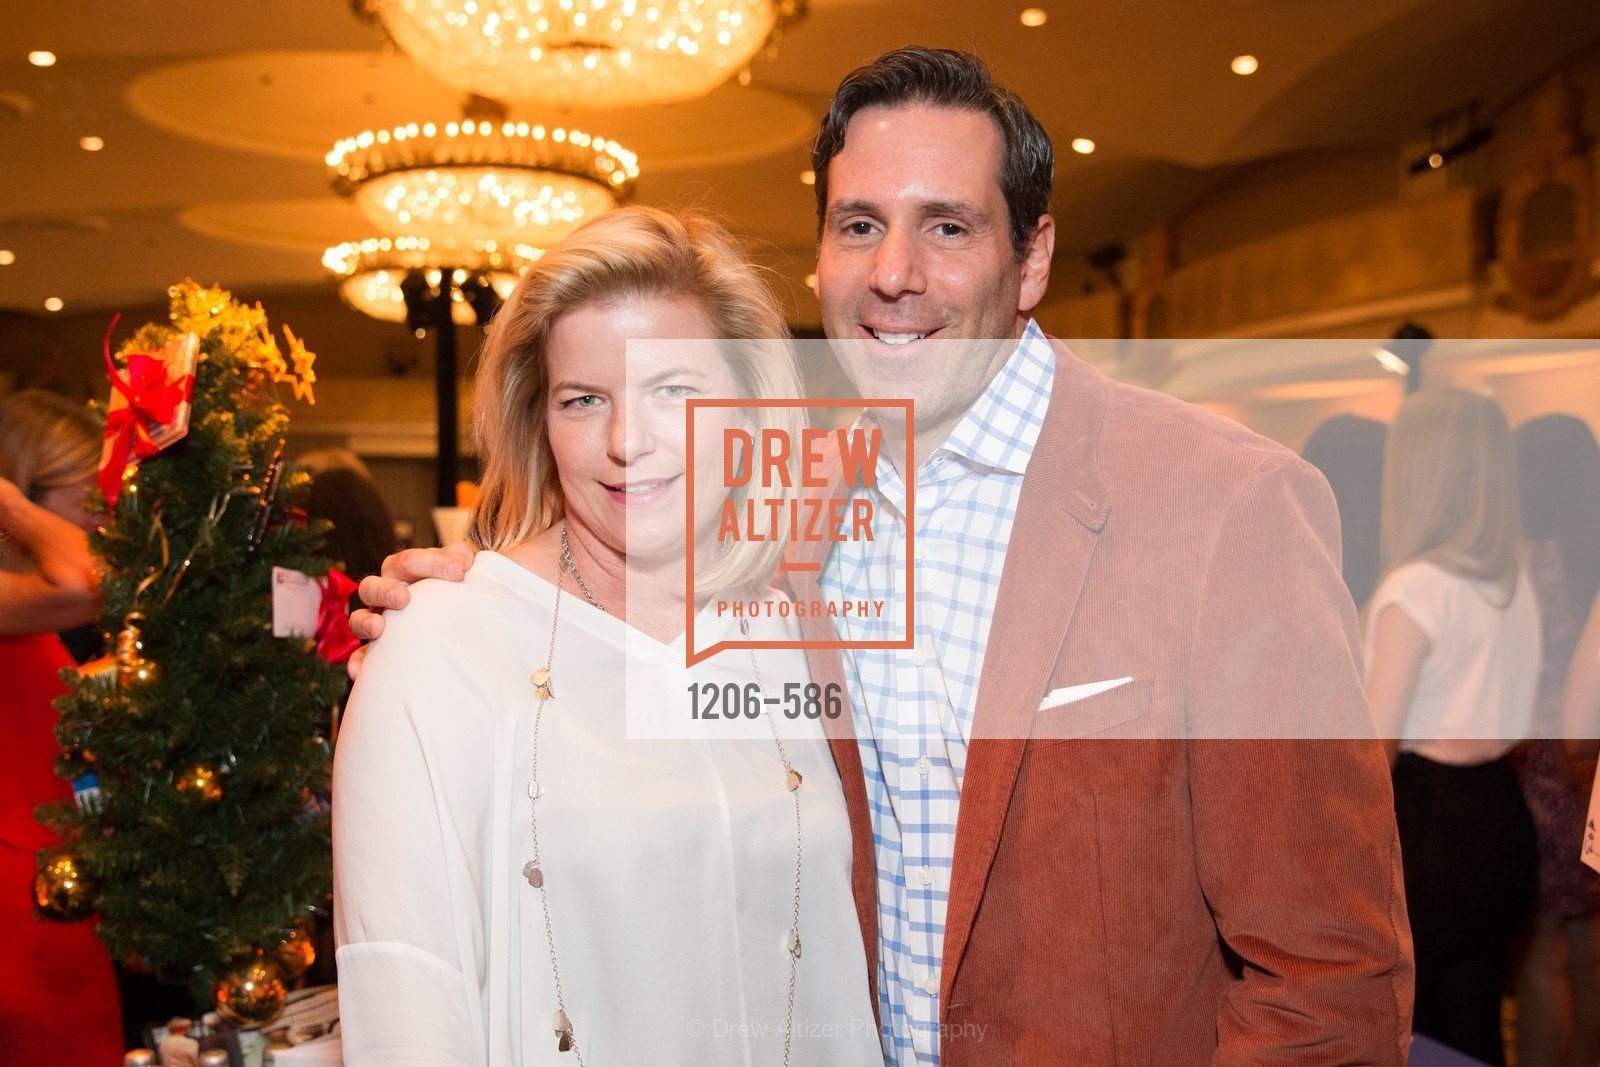 Heidi Marchesotti, Michael Friedes, 2014 Bay Area ARTHRITIS AUXILLIARY Benefit & Fashion Show, US, October 2nd, 2014,Drew Altizer, Drew Altizer Photography, full-service agency, private events, San Francisco photographer, photographer california